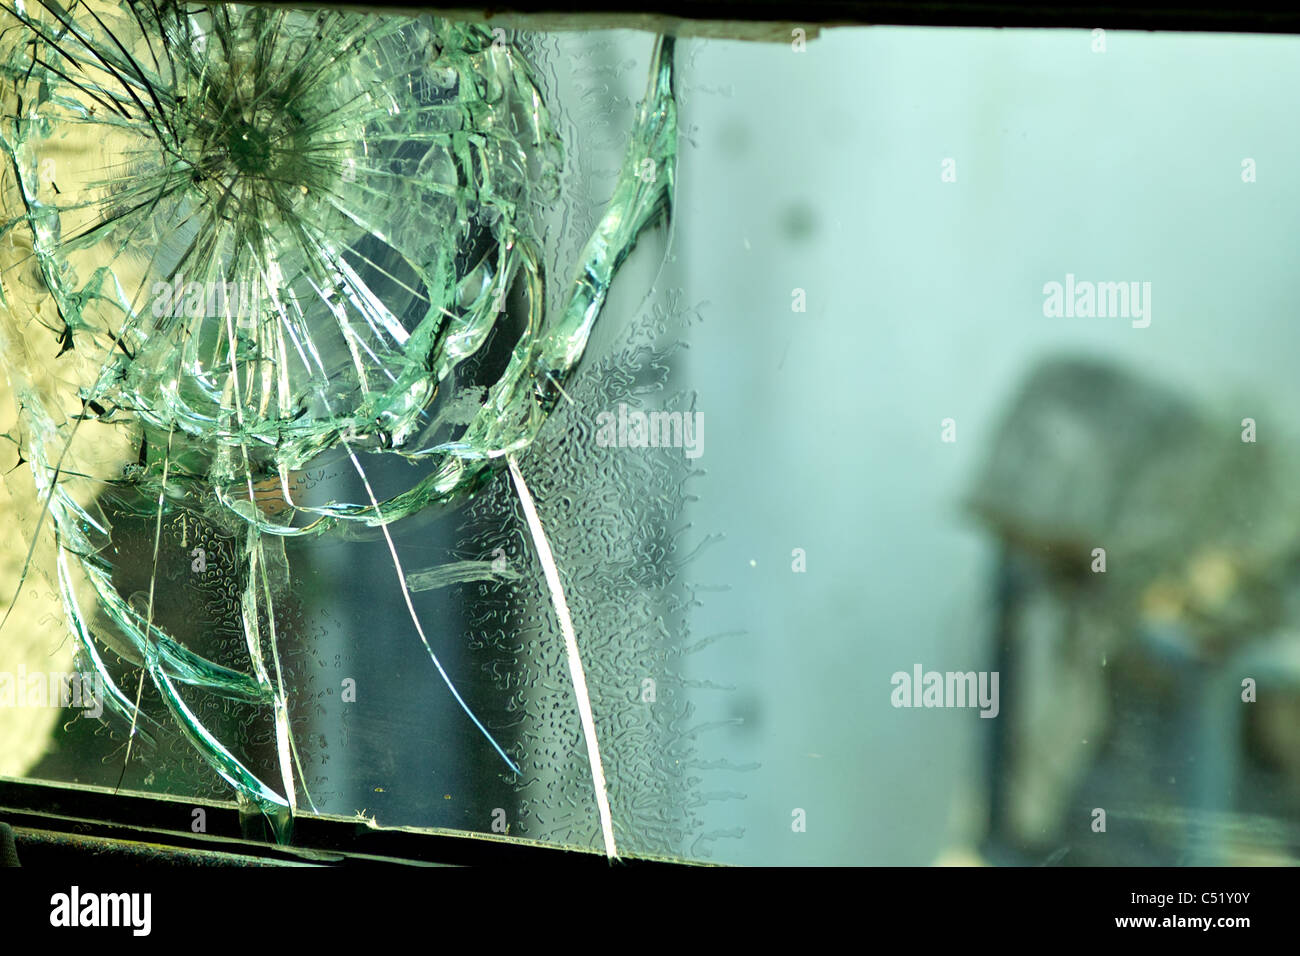 bullet impact on double layer glass in side of armed vehicle - Stock Image